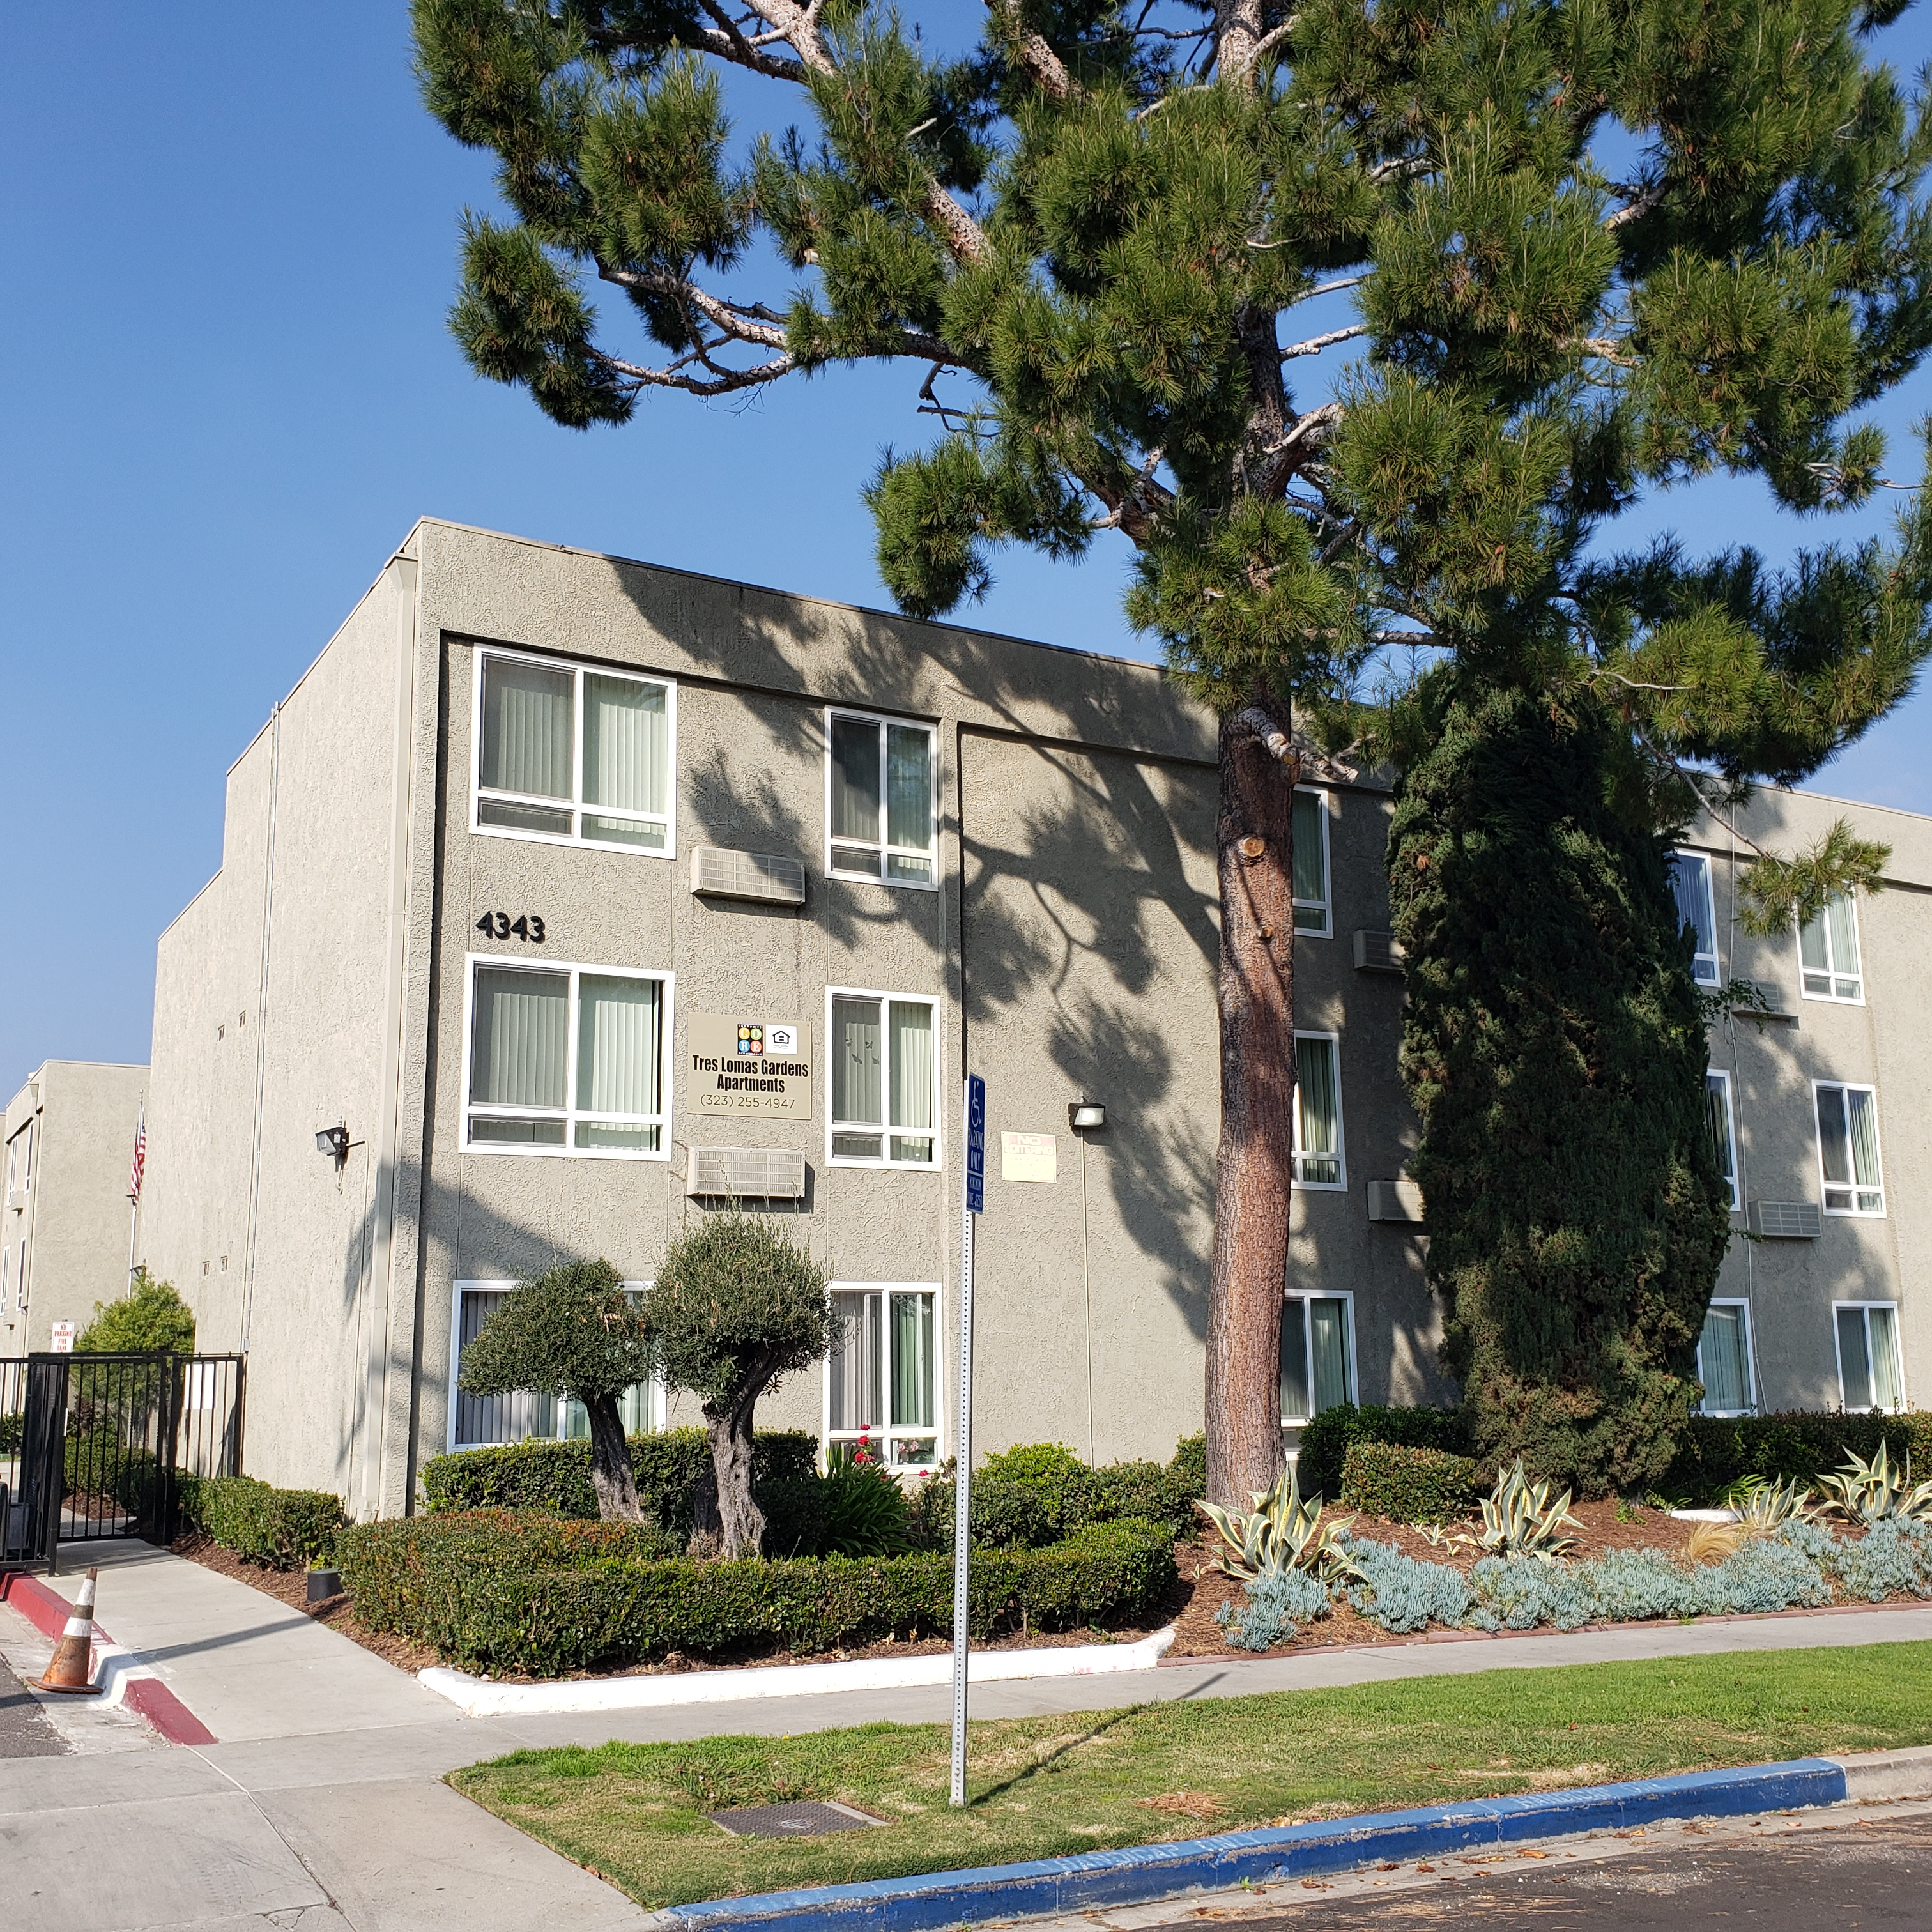 Front view of tres lomas garden apartments. multi-story building with large trees, bushes and grass in the front. Section of curb on street is painted blue with parking accessibility sign.